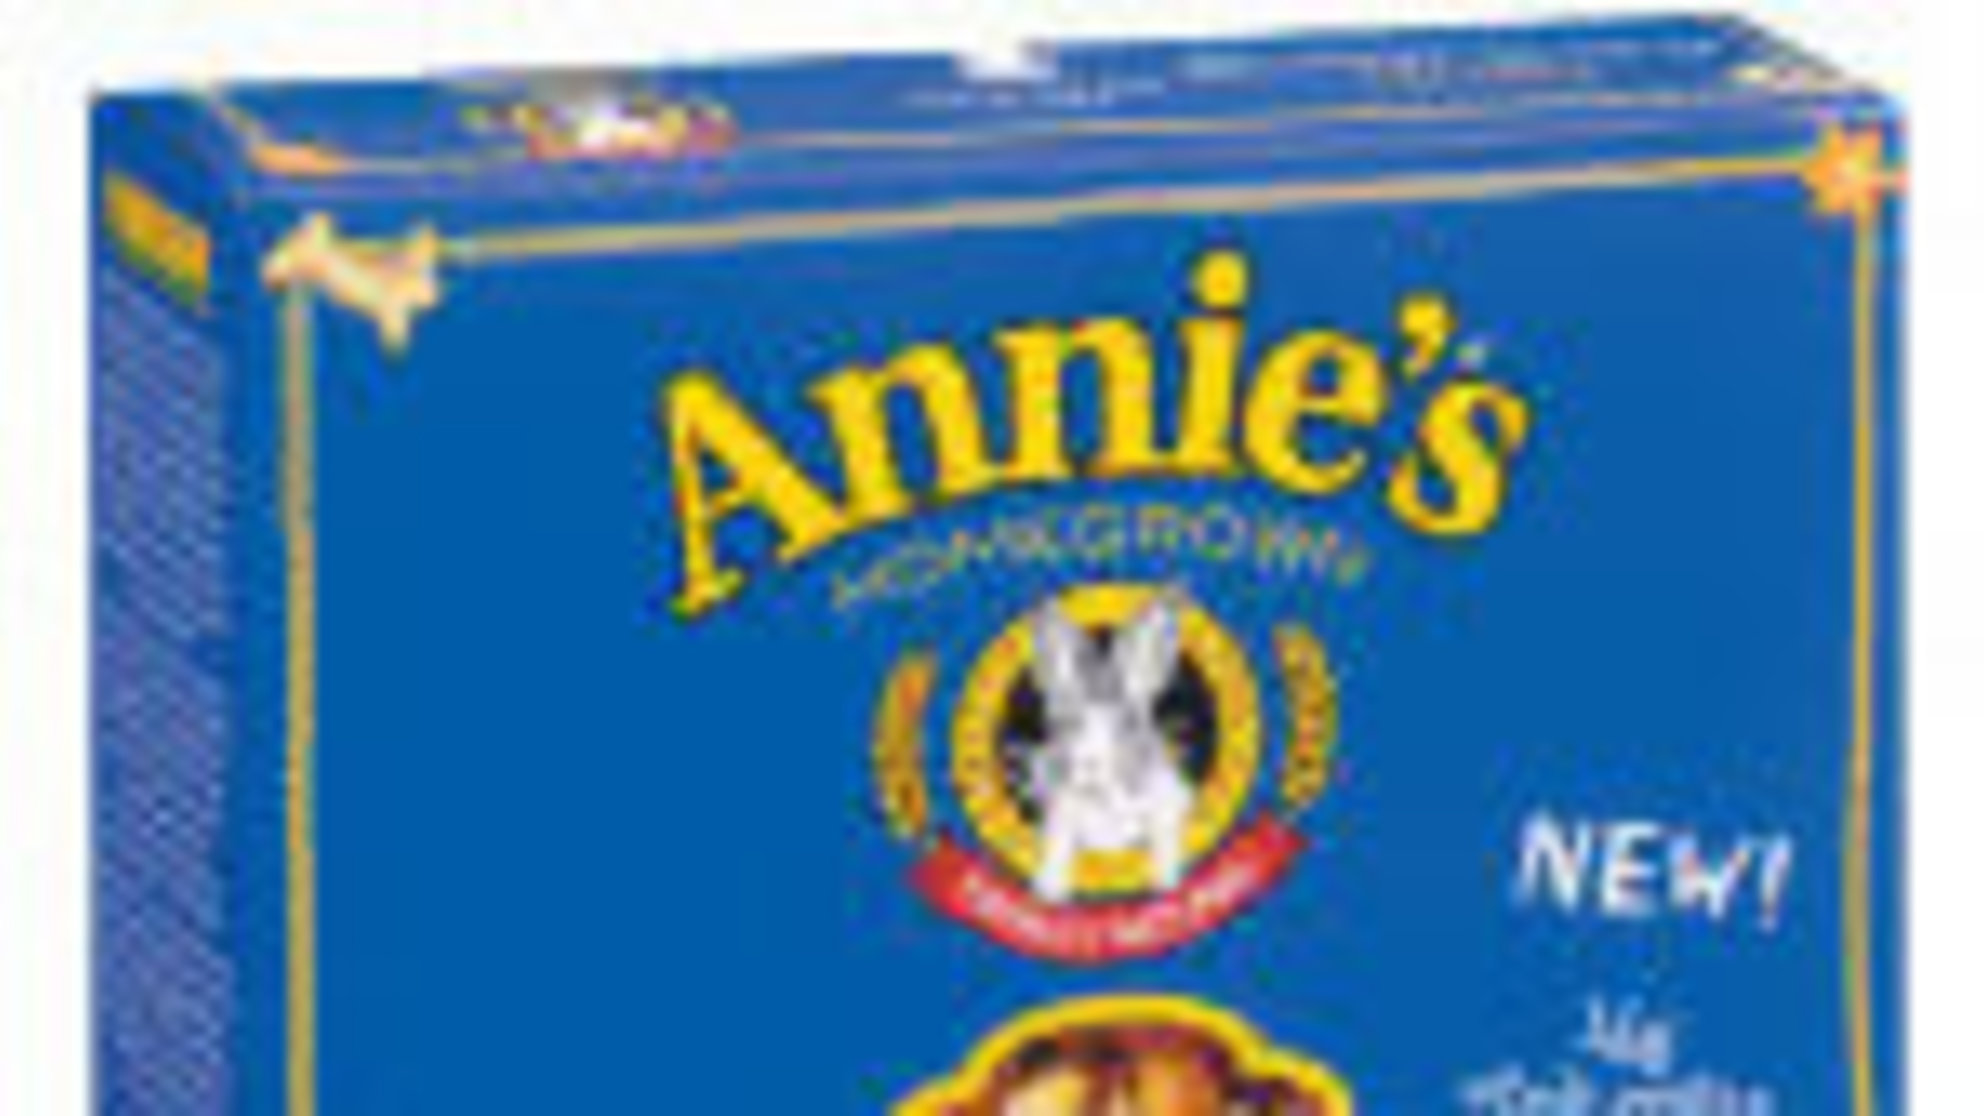 Annie's Bunny Crunch Honey